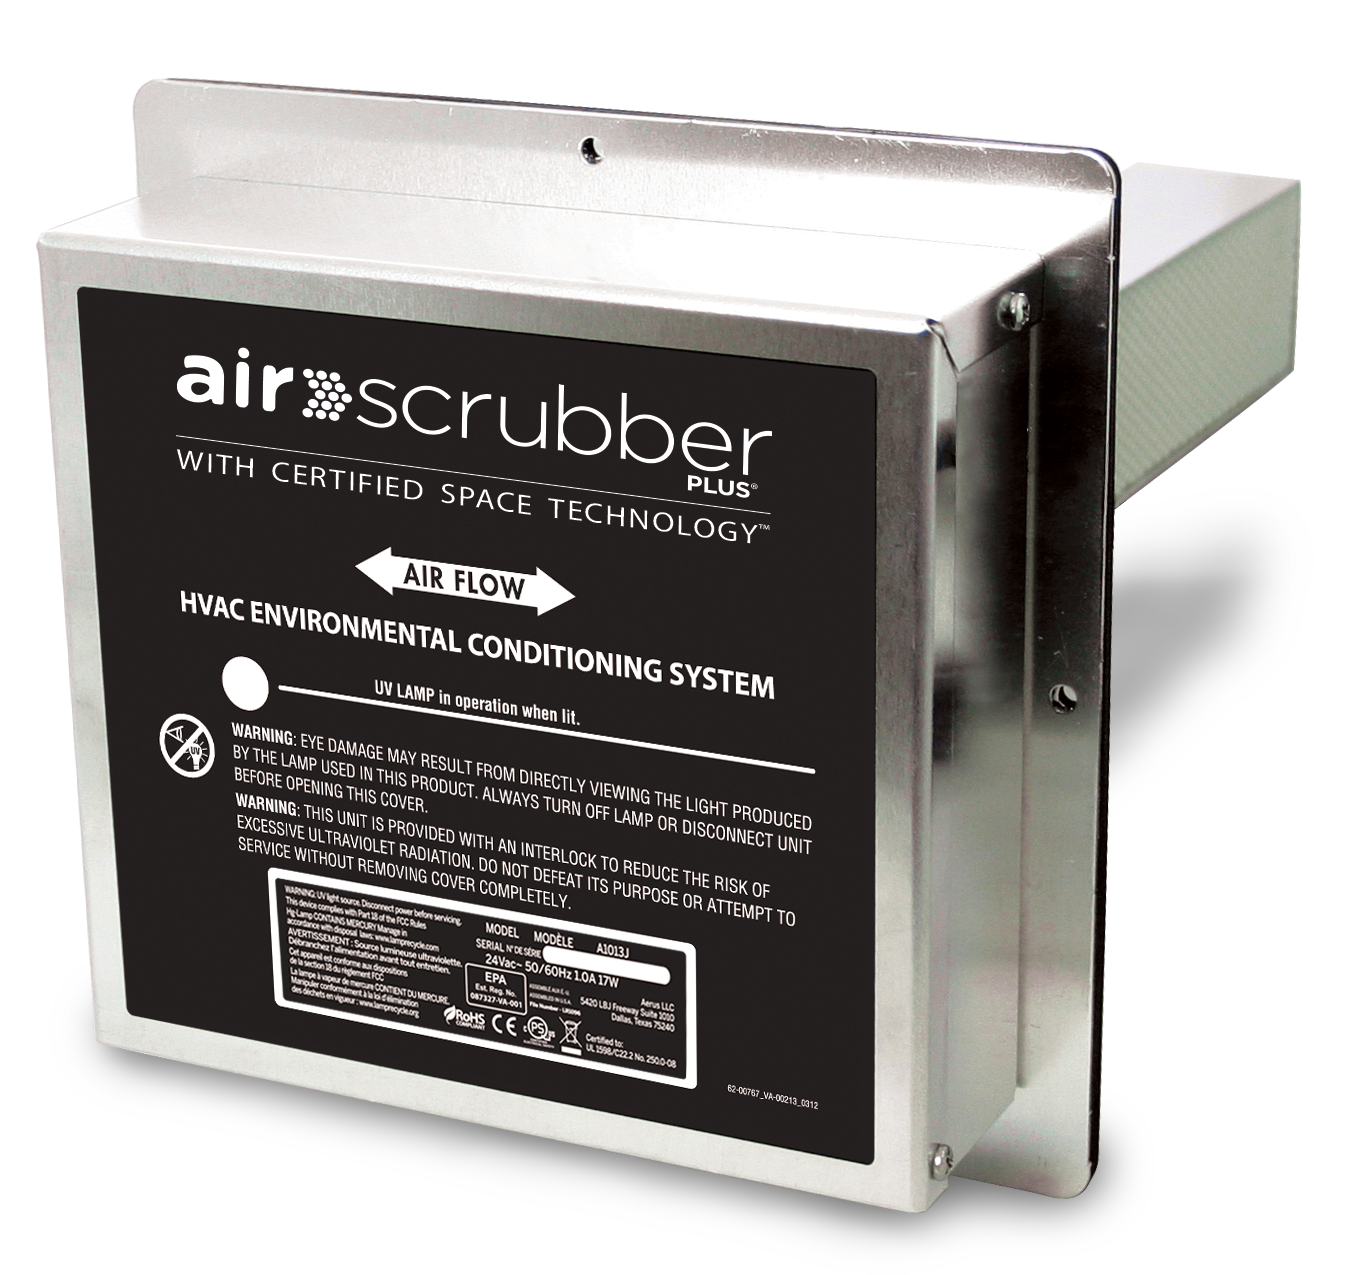 Air Scrubber plus heating cooling product